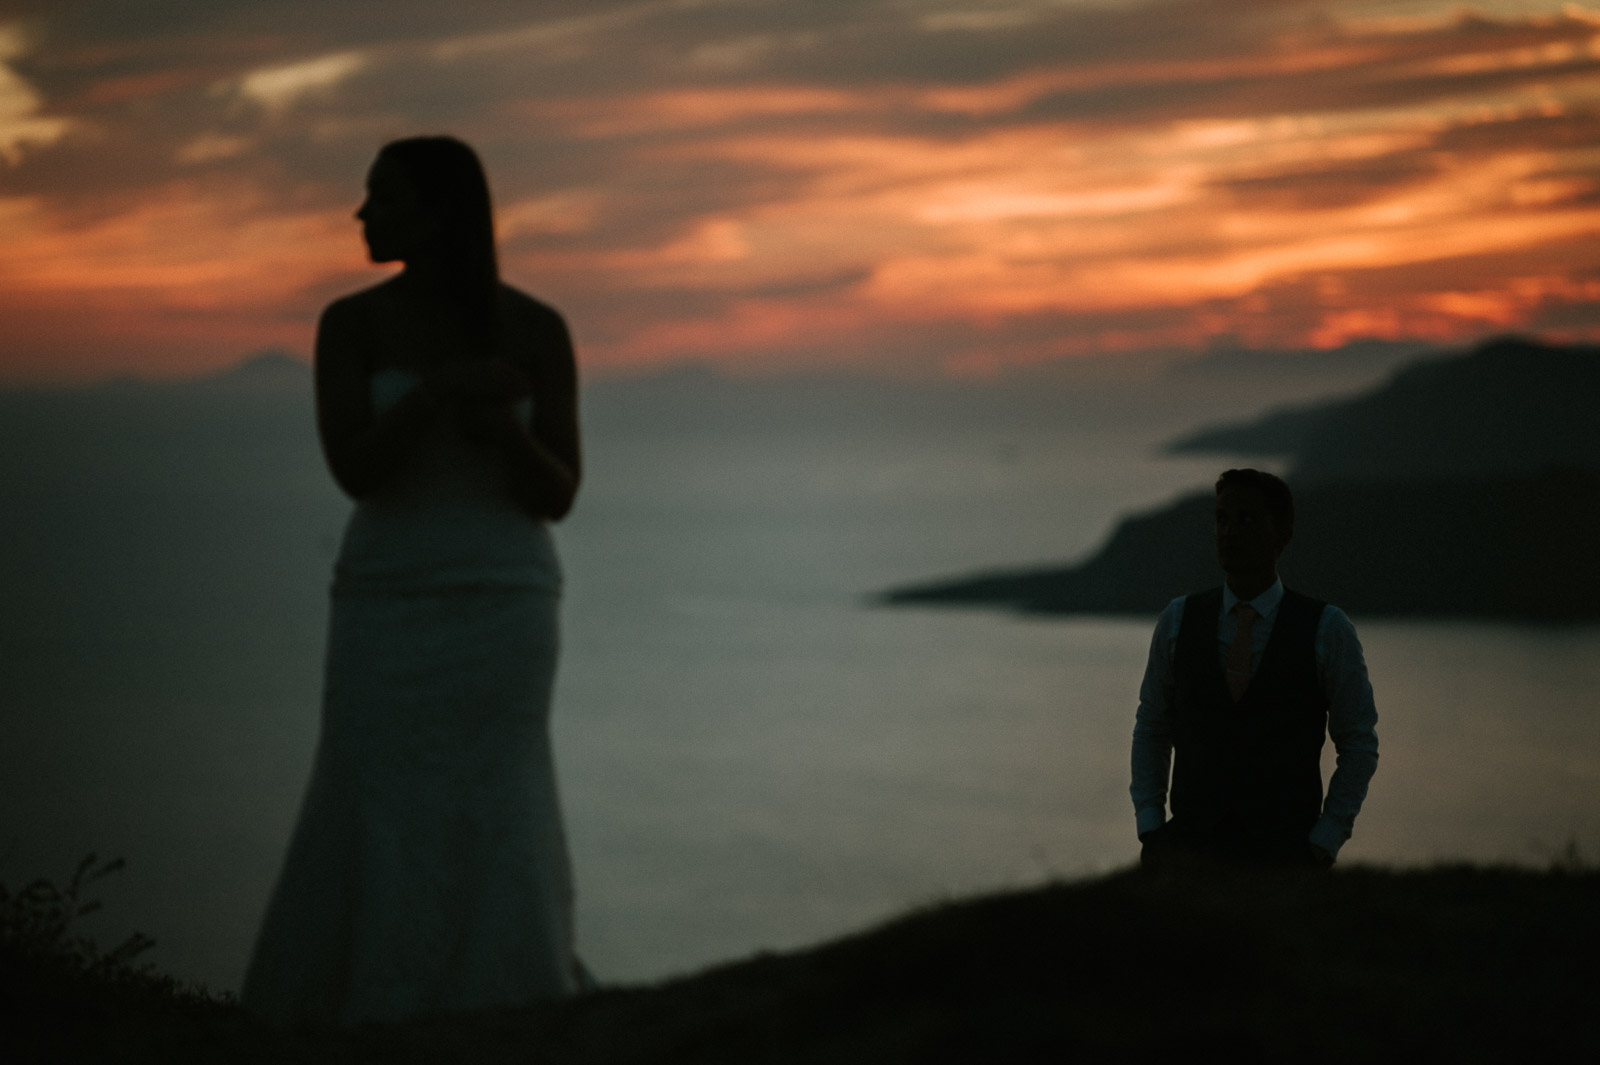 Santorini-Wedding-Photographer-Greece-Destination-Weddings-Mait-Juriado-M&J-Studios-132